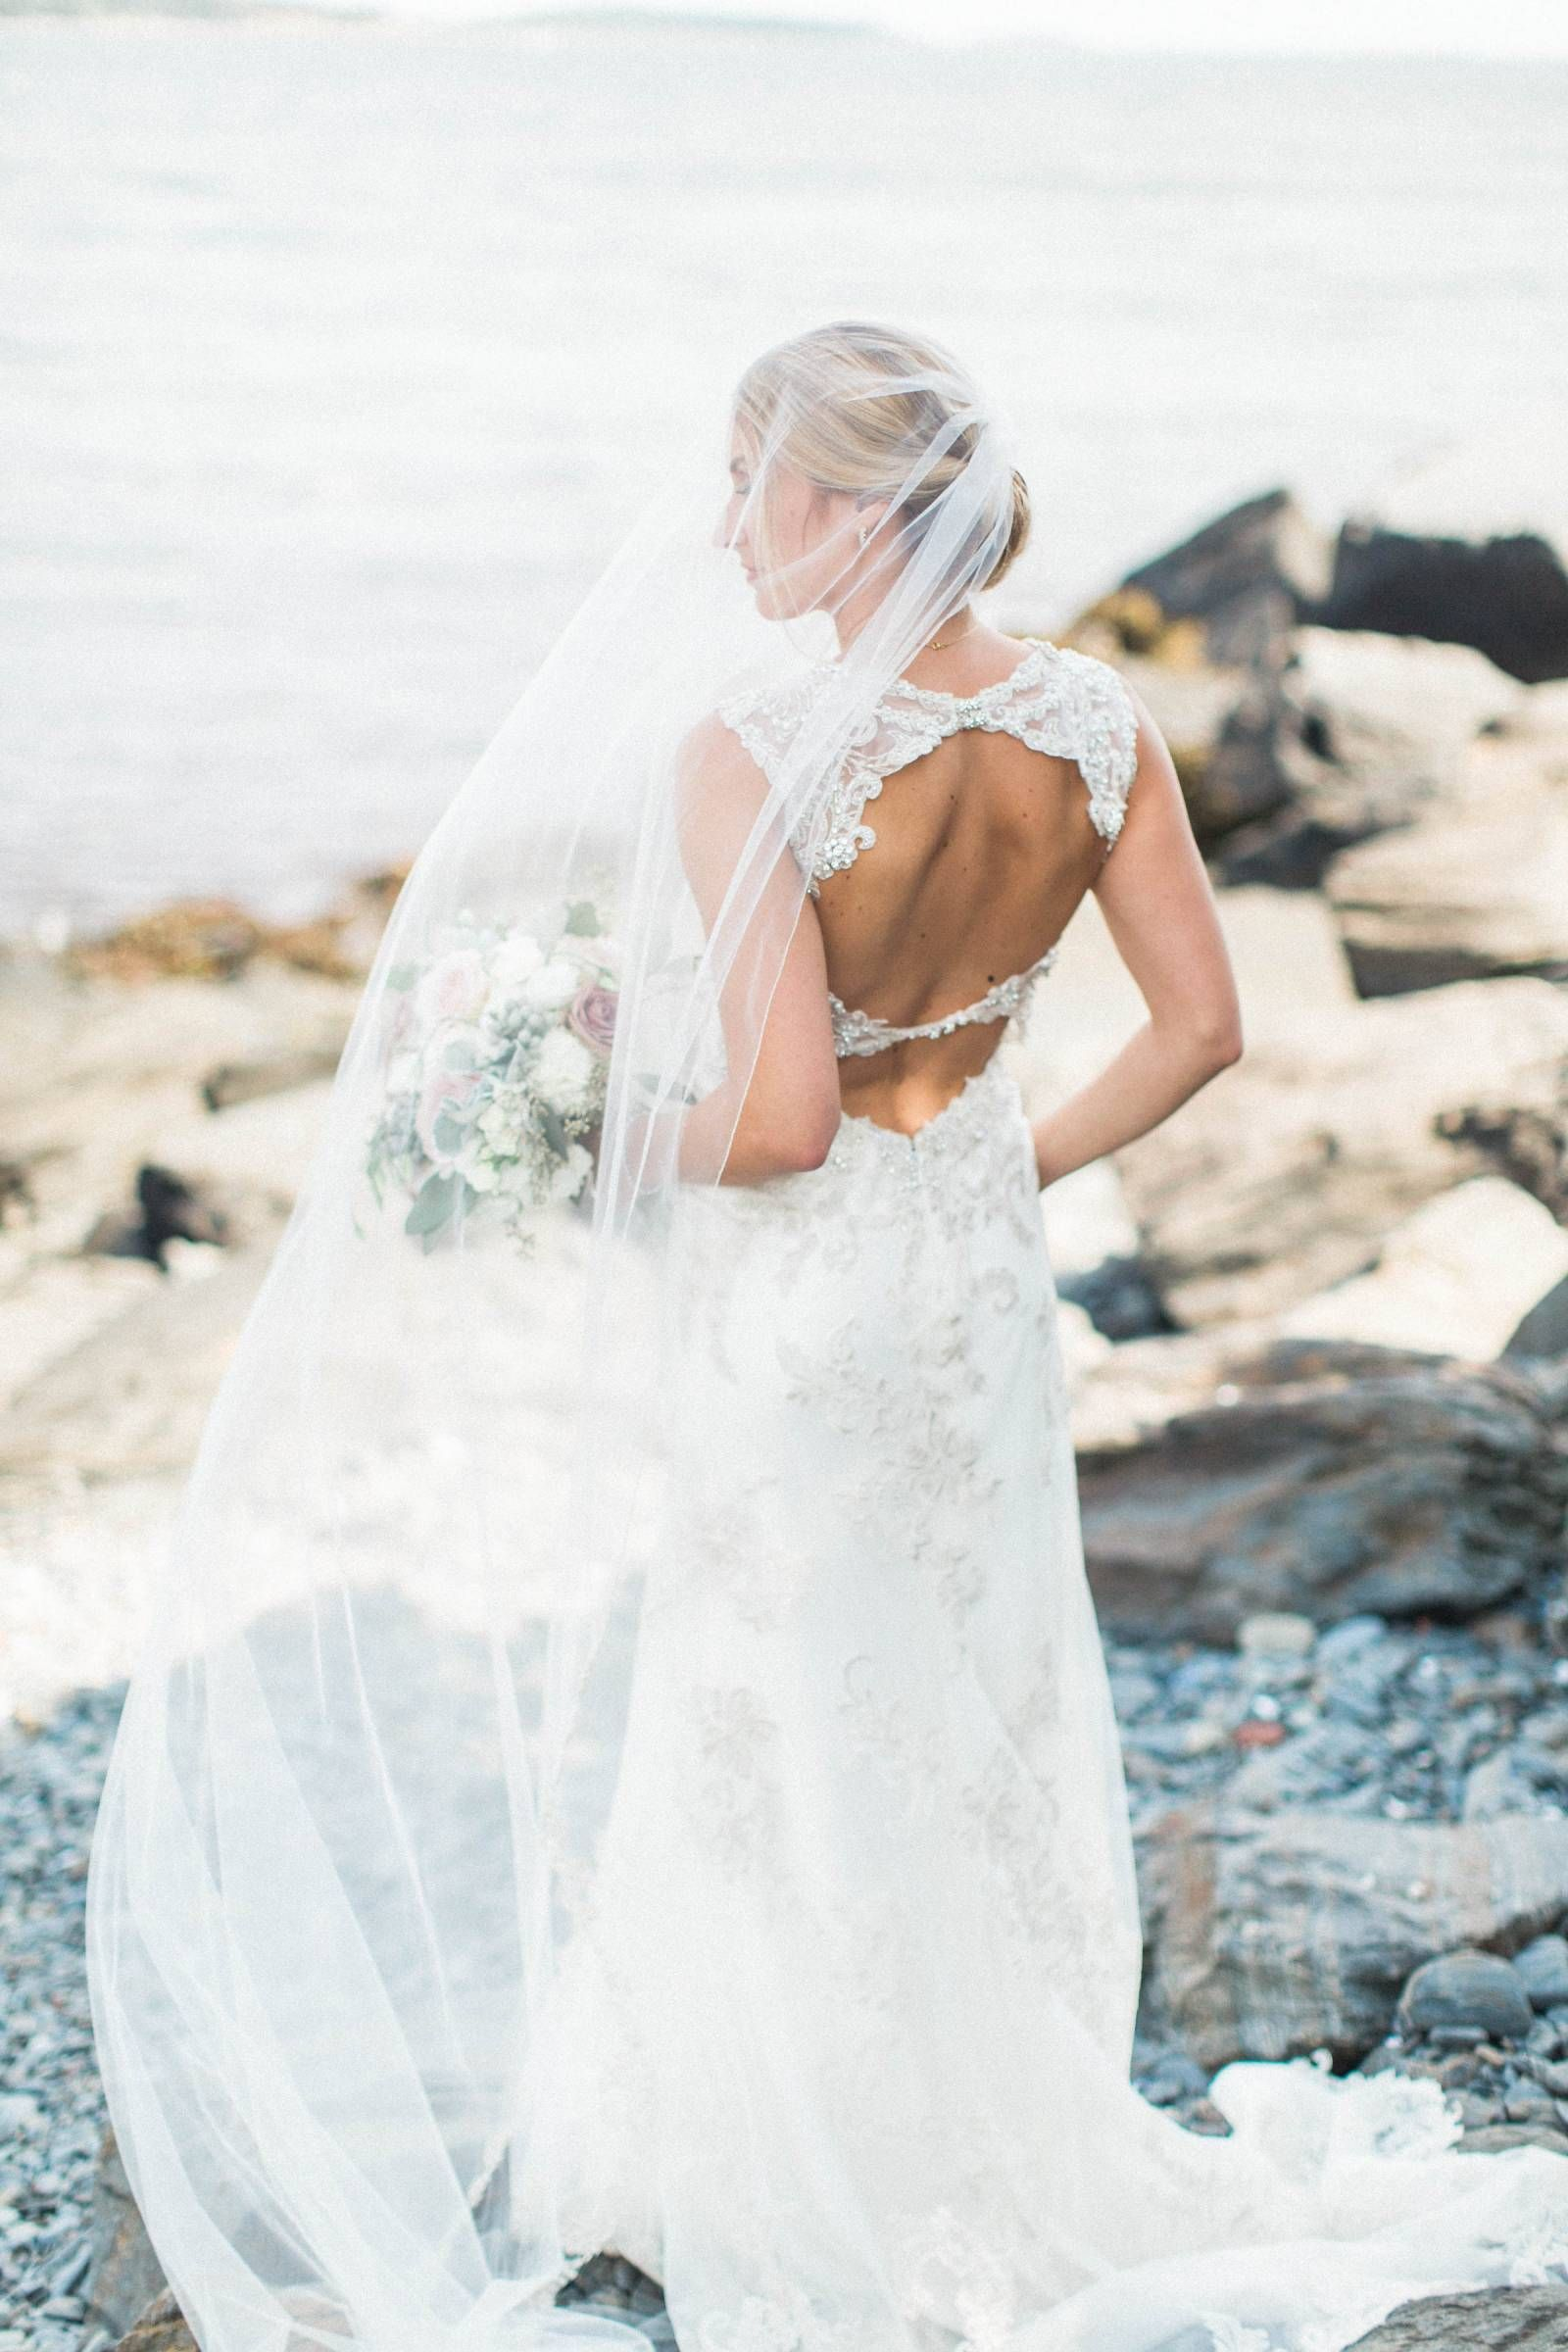 Lace wedding dress with cap sleeves sweetheart neckline  Dayof Wedding Coordination via Elegant Productions  Lace Cap